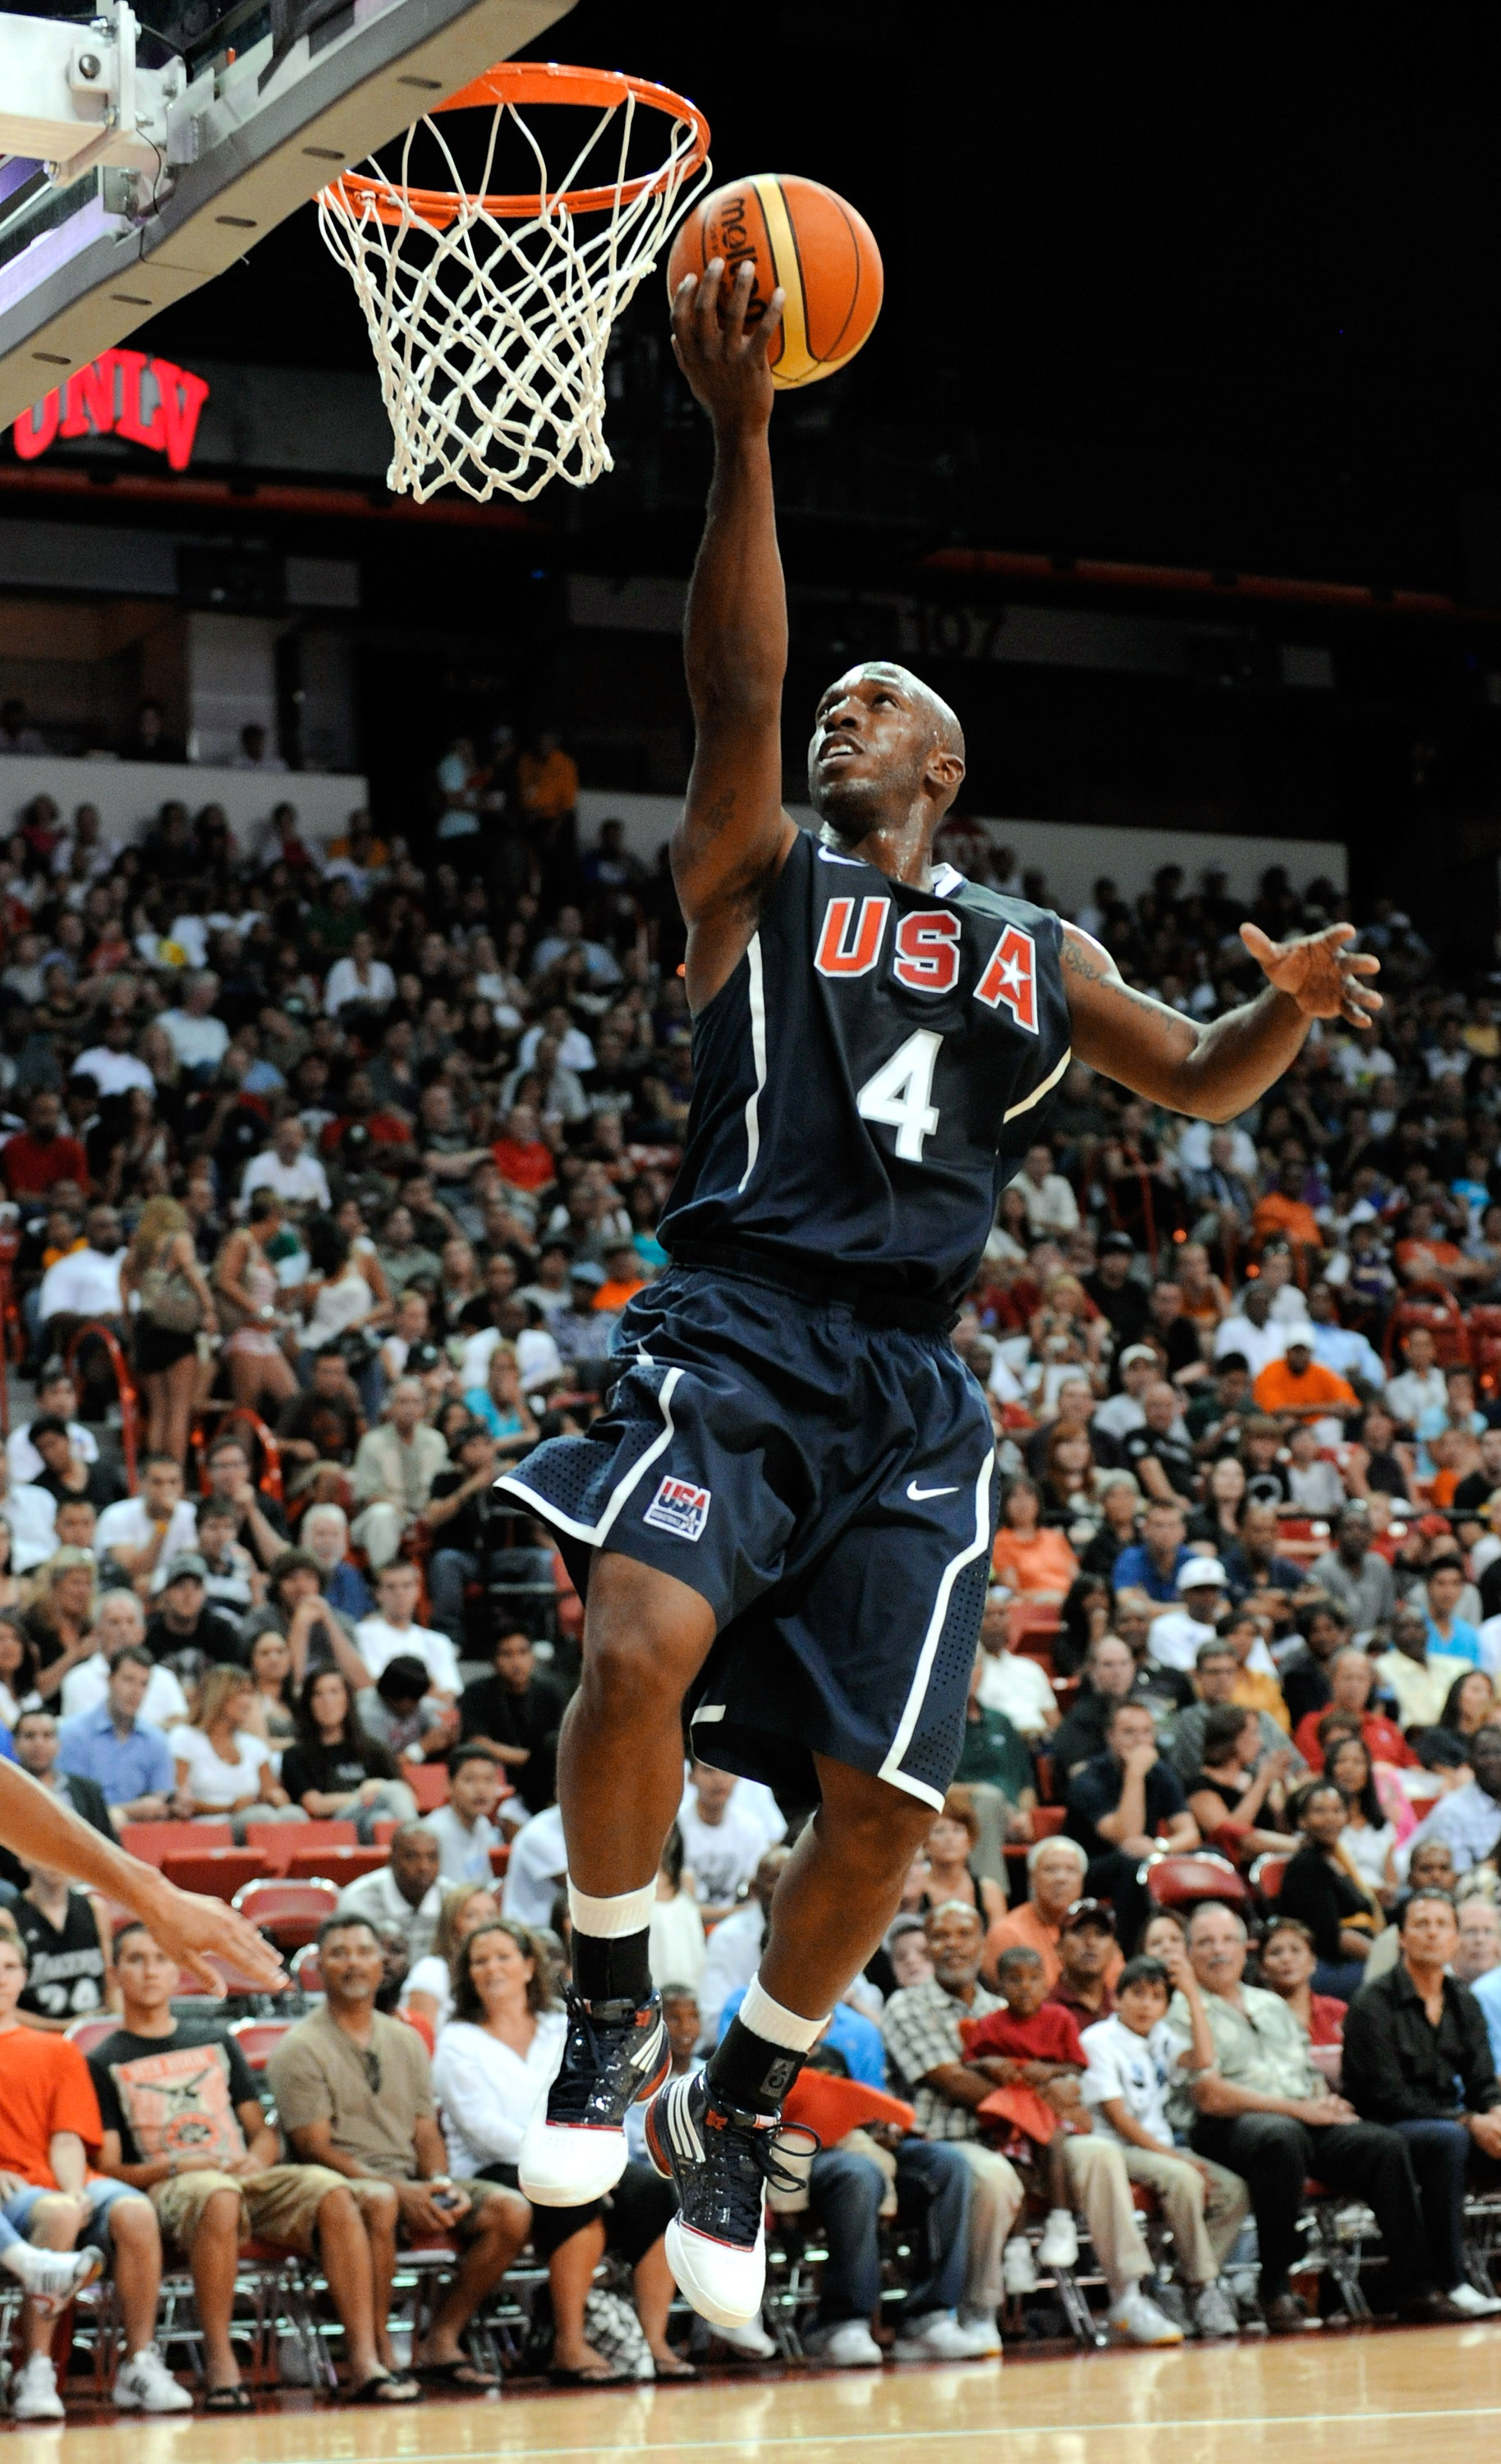 LAS VEGAS - JULY 24:  Chauncey Billups #4 of the 2010 USA Basketball Men's National Team goes in for a layup during a USA Basketball showcase at the Thomas & Mack Center on July 24, 2010 in Las Vegas, Nevada.  (Photo by Ethan Miller/Getty Images)